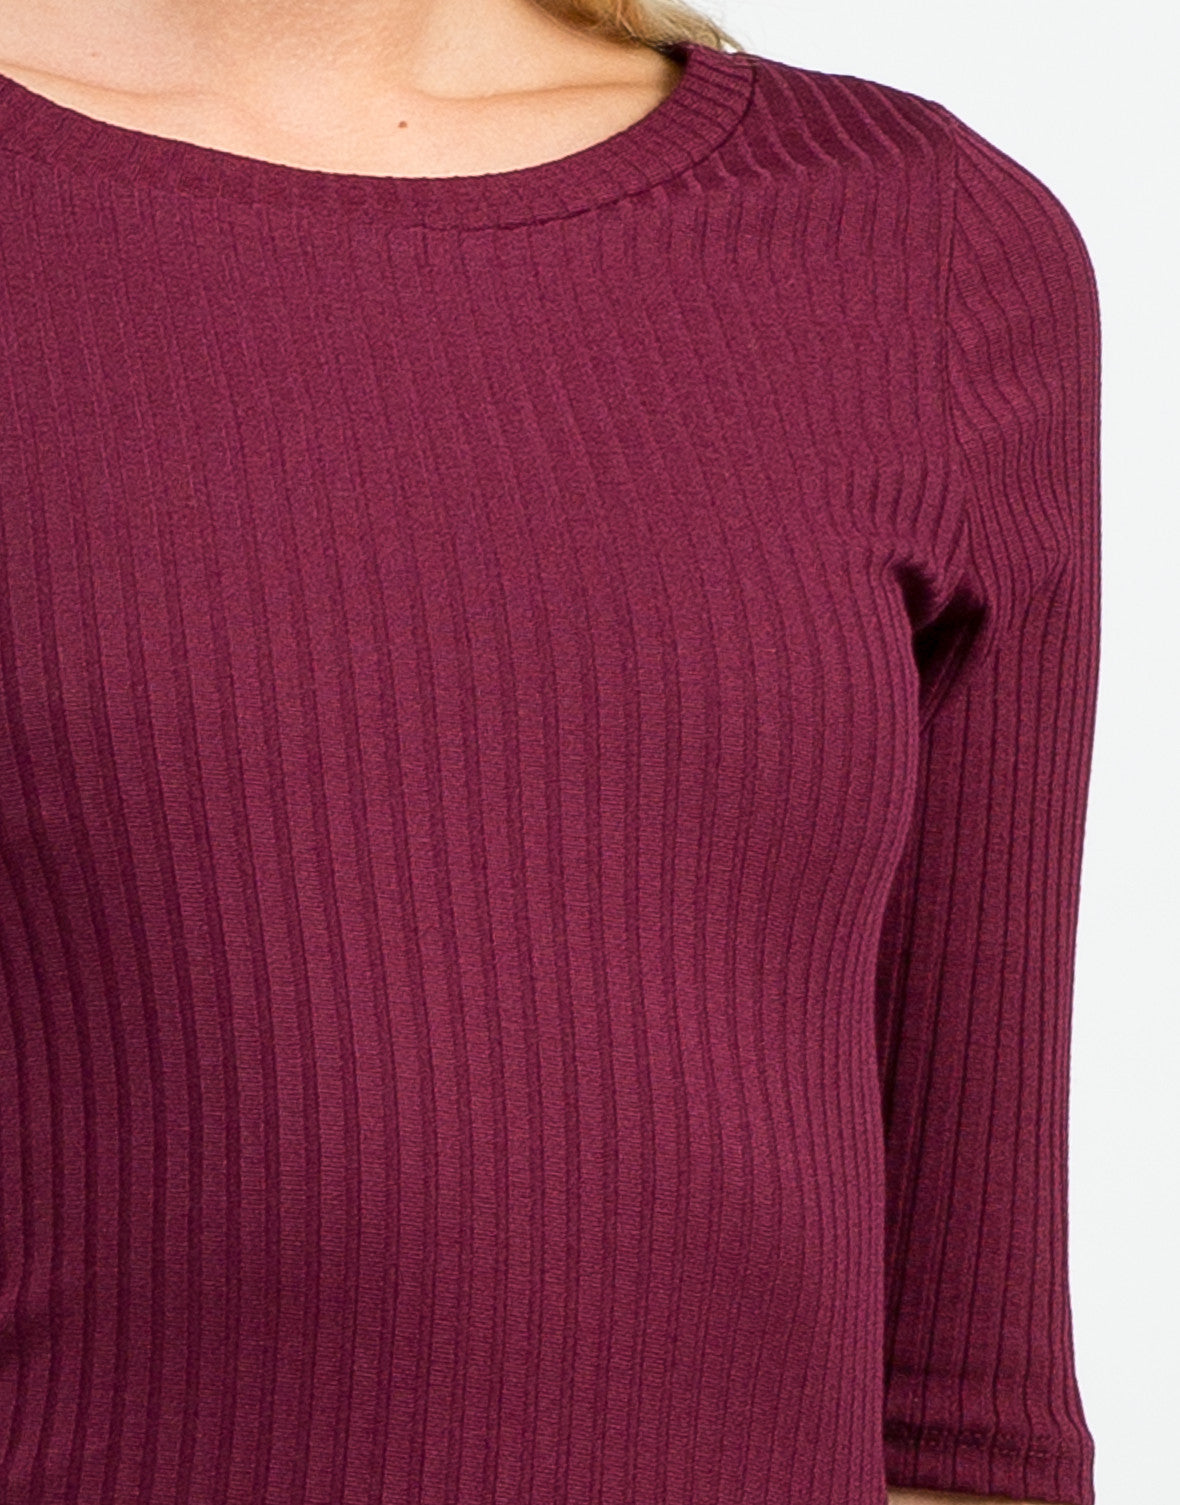 Detail of Ribbed 3/4 Tunic Top